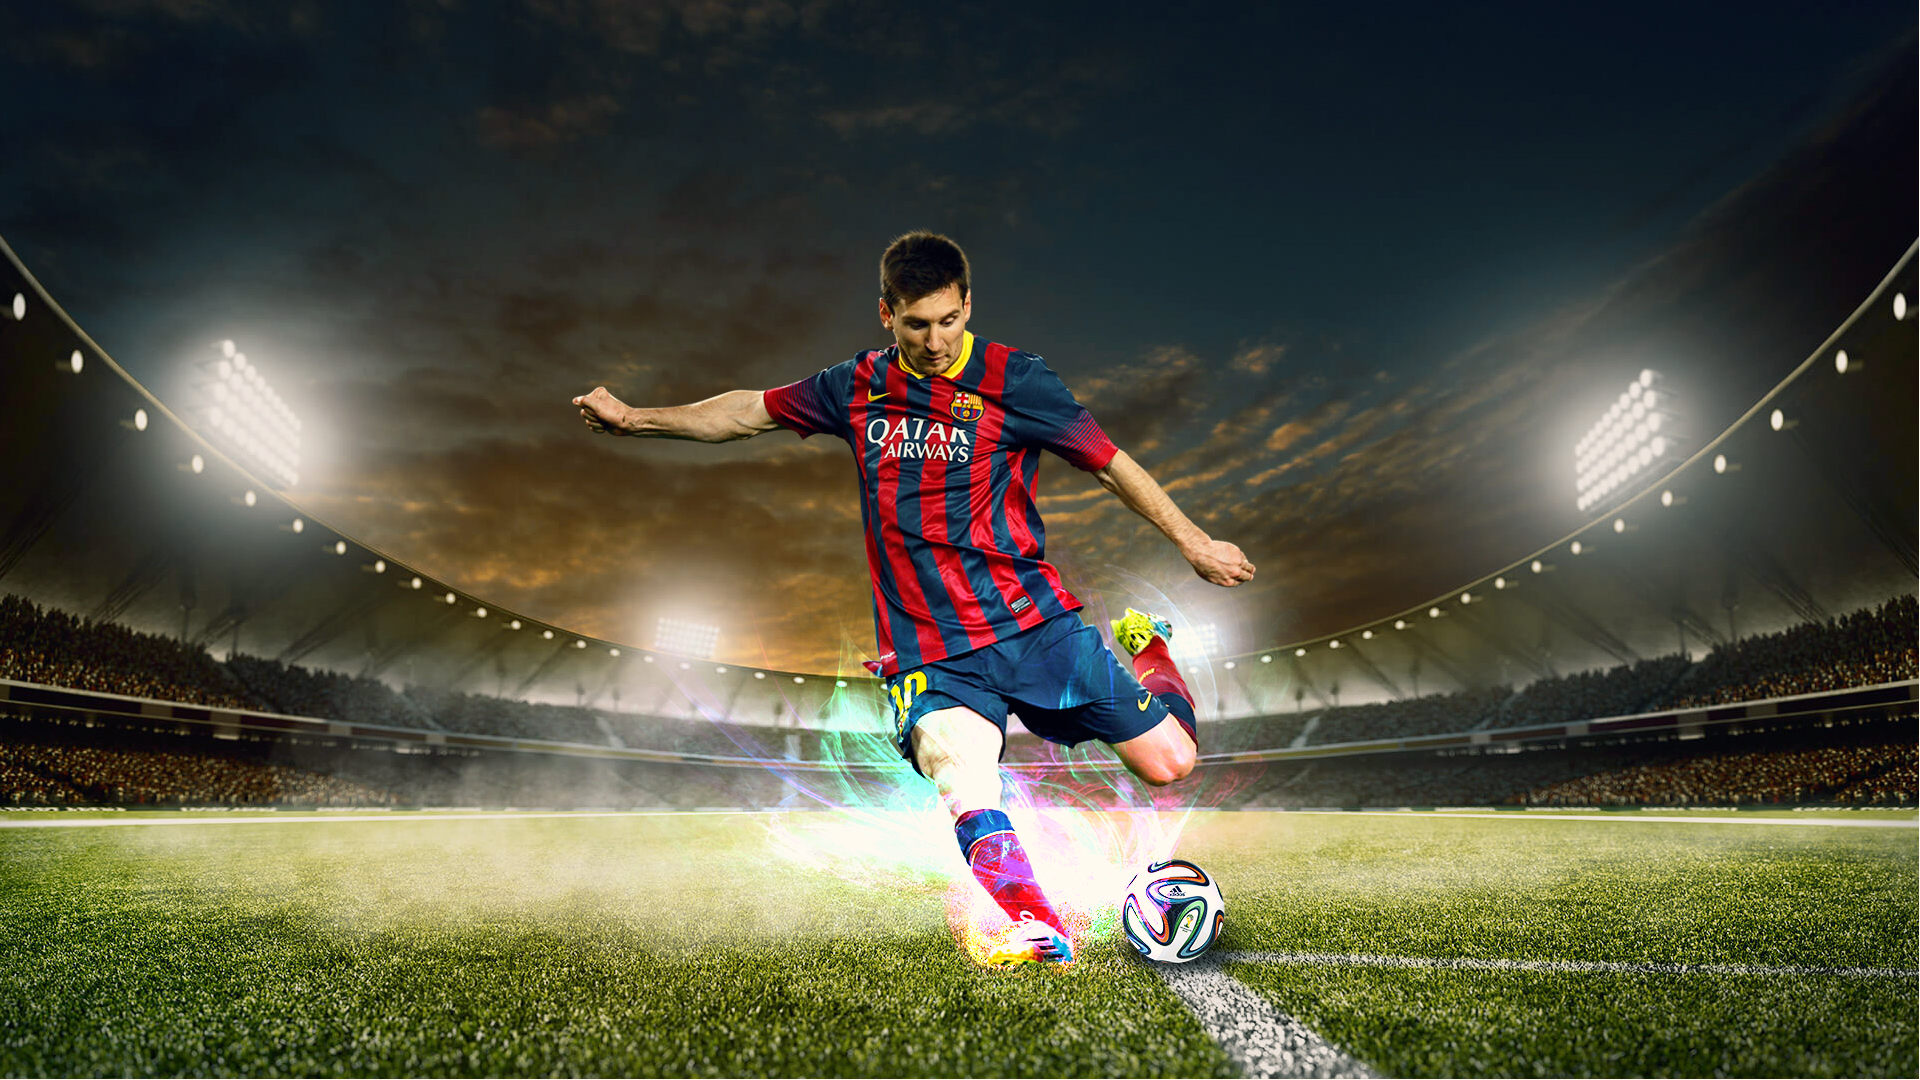 Download Wallpaper Sport Football